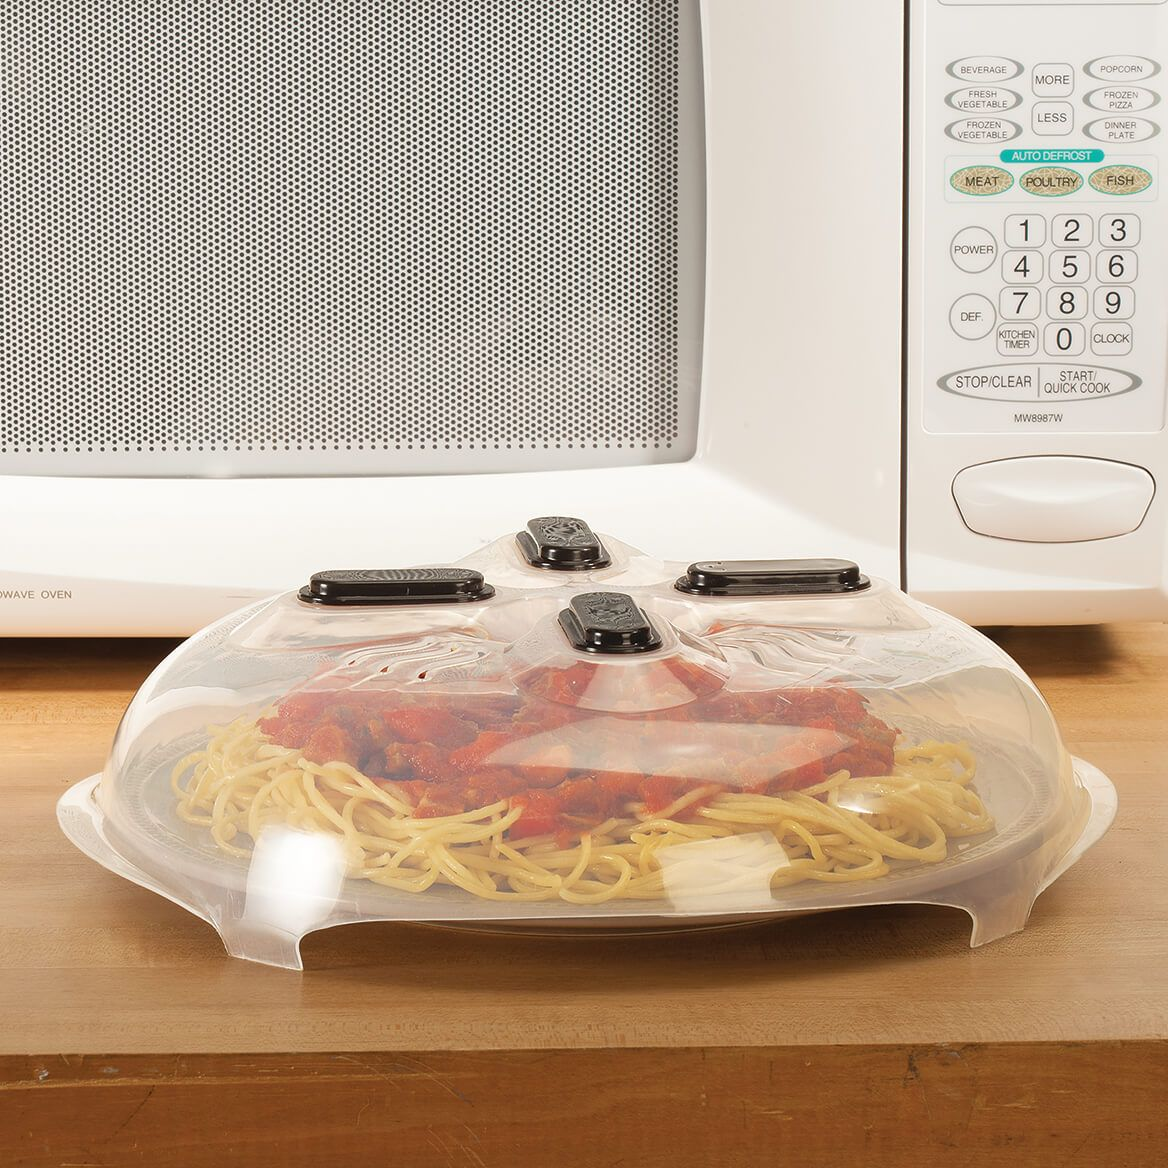 Hanging Microwave Cover-362986